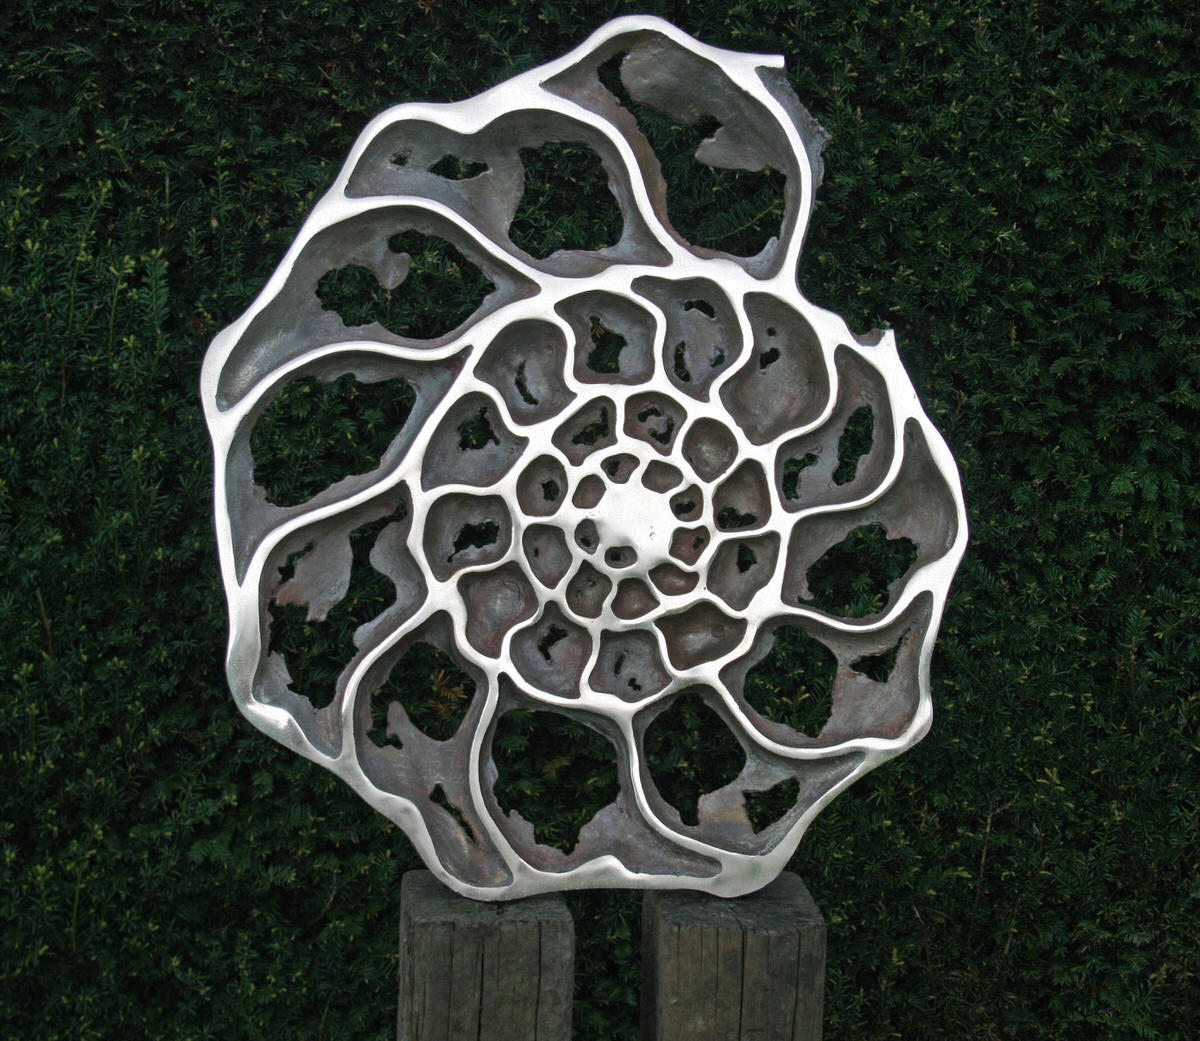 Ammonite 'inside' sculpture- bronze ammonite fossil geology sculpture corporate sculpture for hotels by Mark Reed